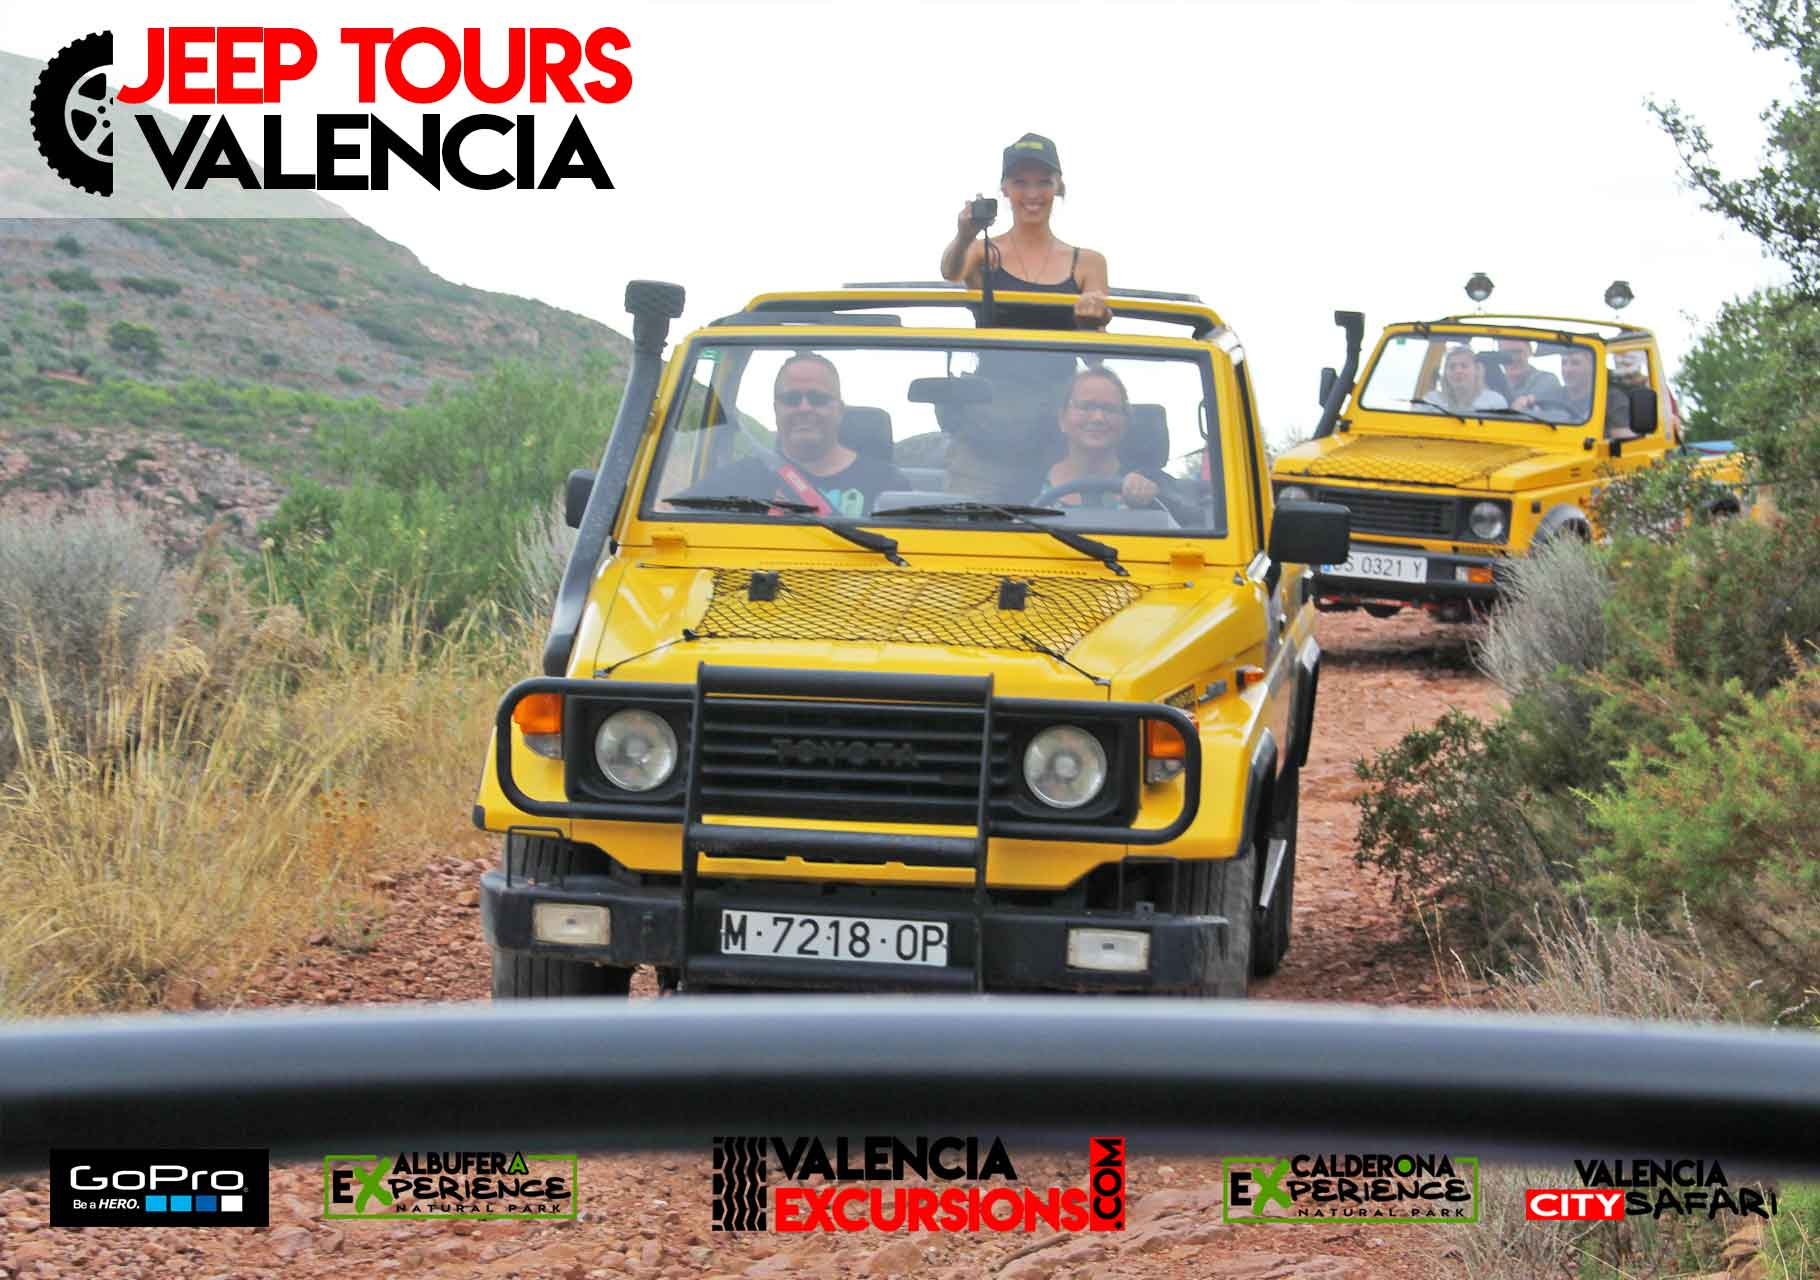 4x4 Jeep tour in Valencia